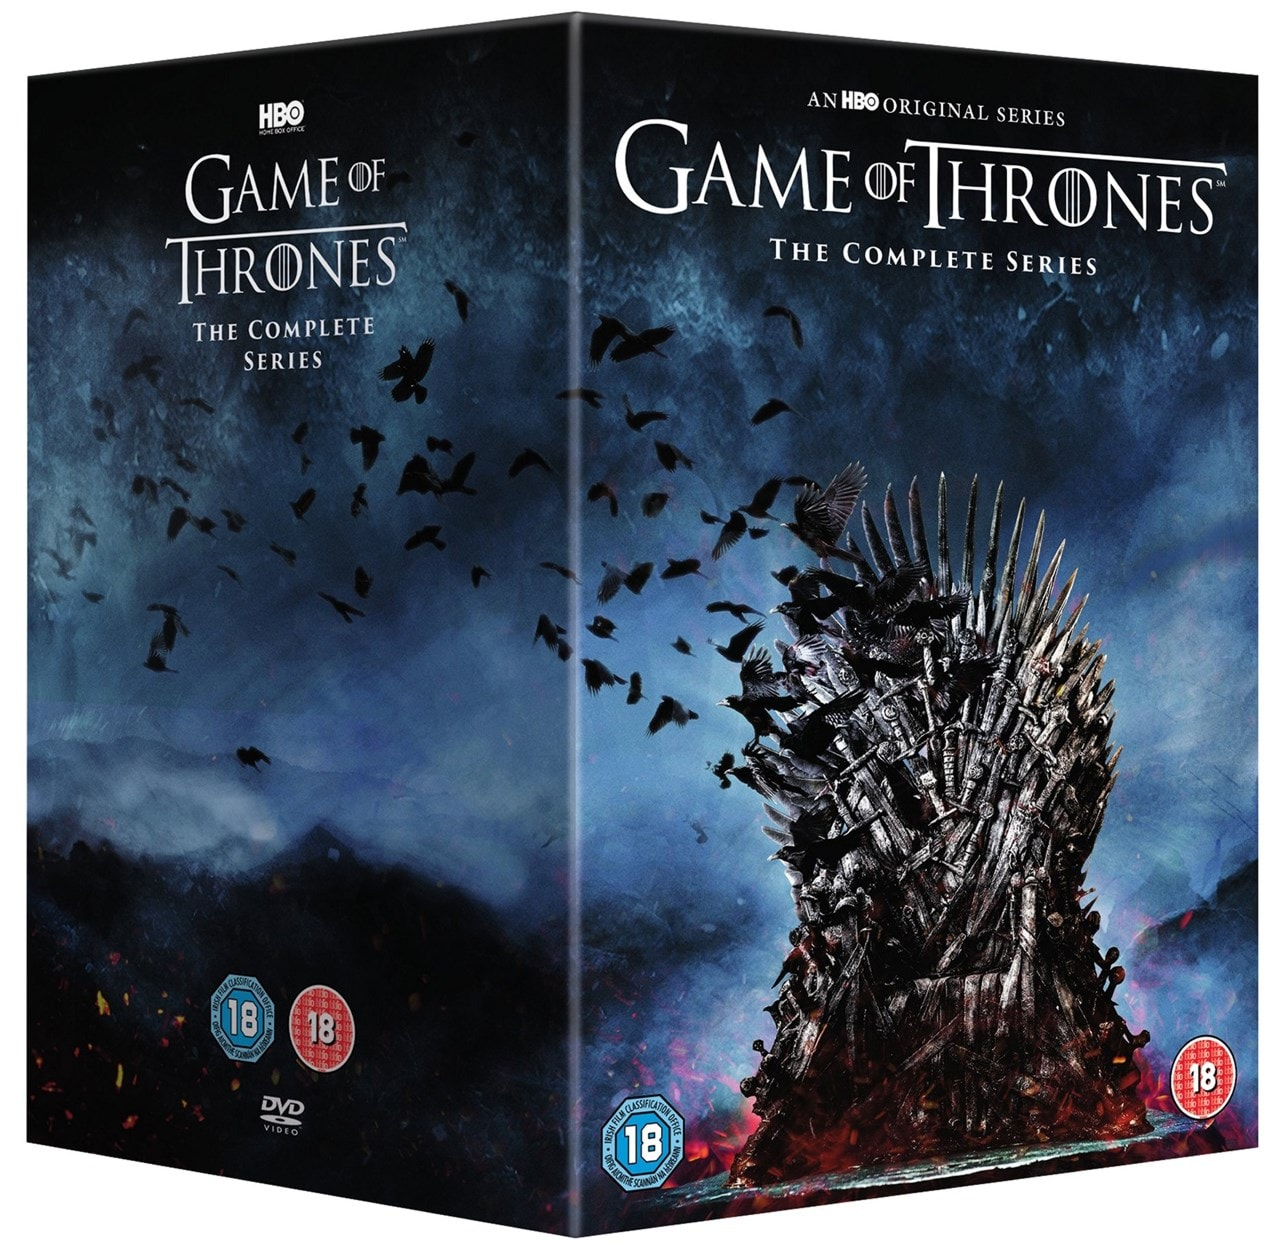 Game of Thrones: The Complete Series - 2